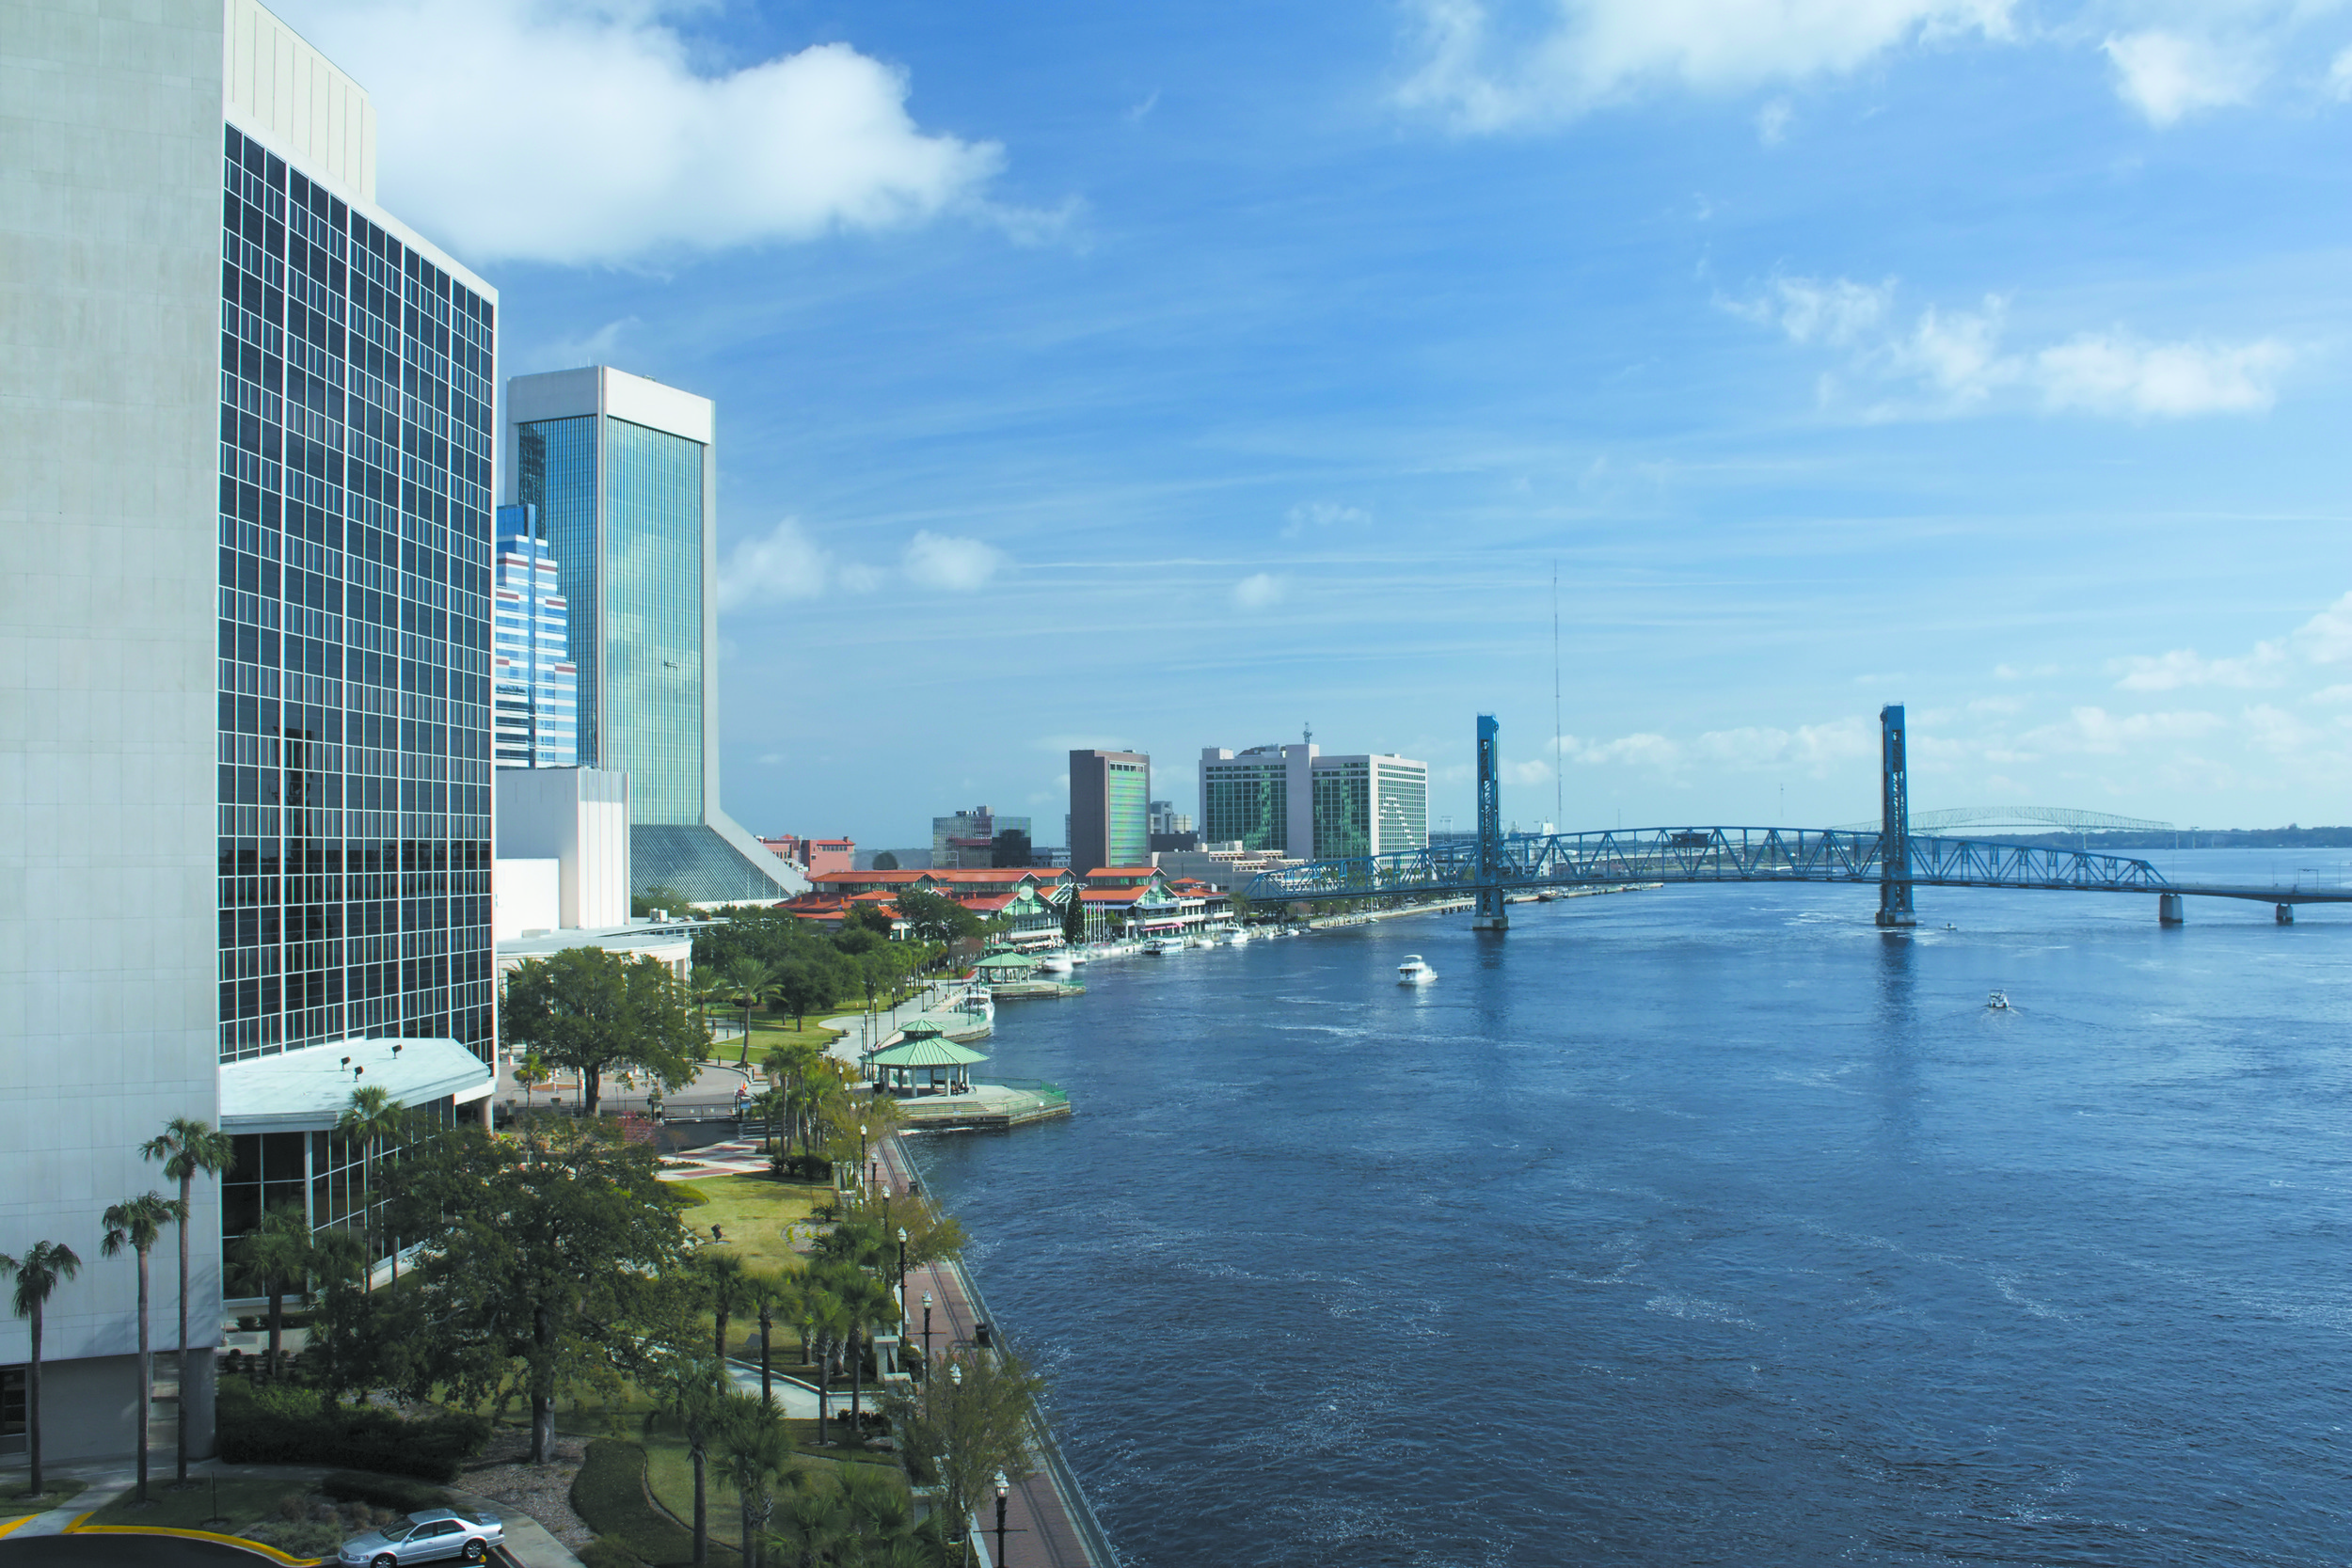 The northward-flowing St. Johns River meanders through Downtown Jacksonville before heading past the ports, eventually spilling into the Atlantic Ocean.